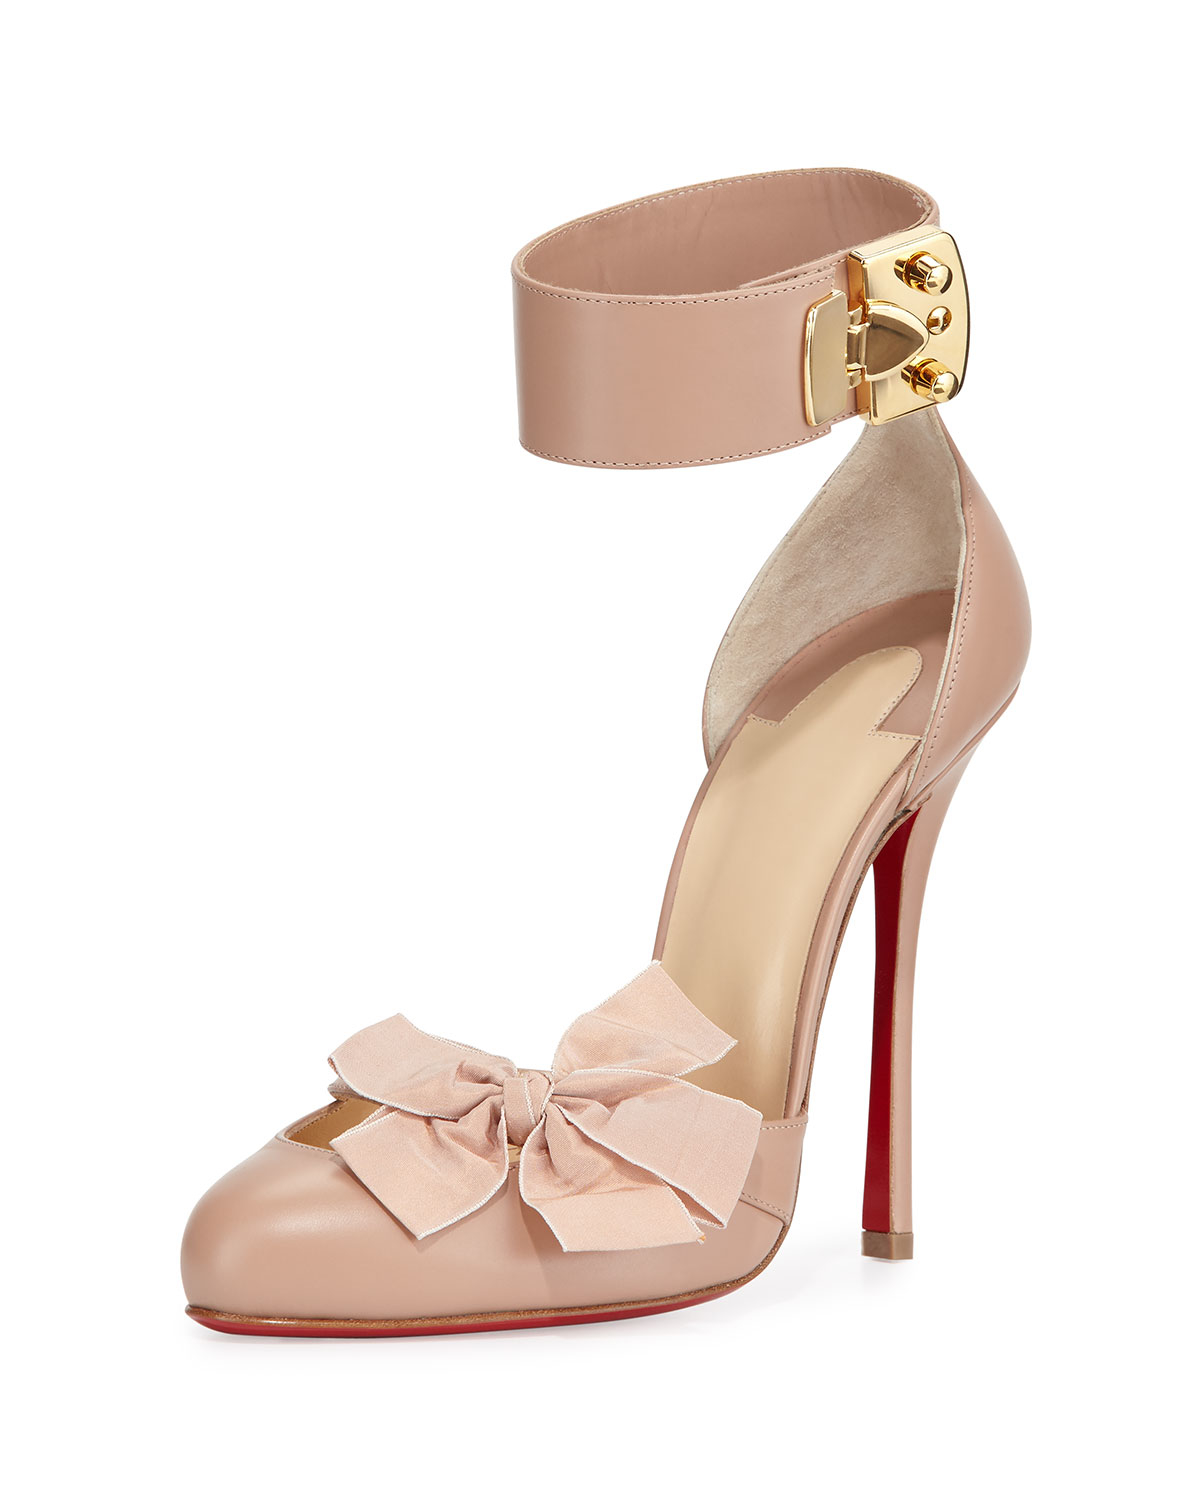 purple louboutins shoes - Christian louboutin Fetish Red-Sole Leather Pump in Beige (NUGE ...